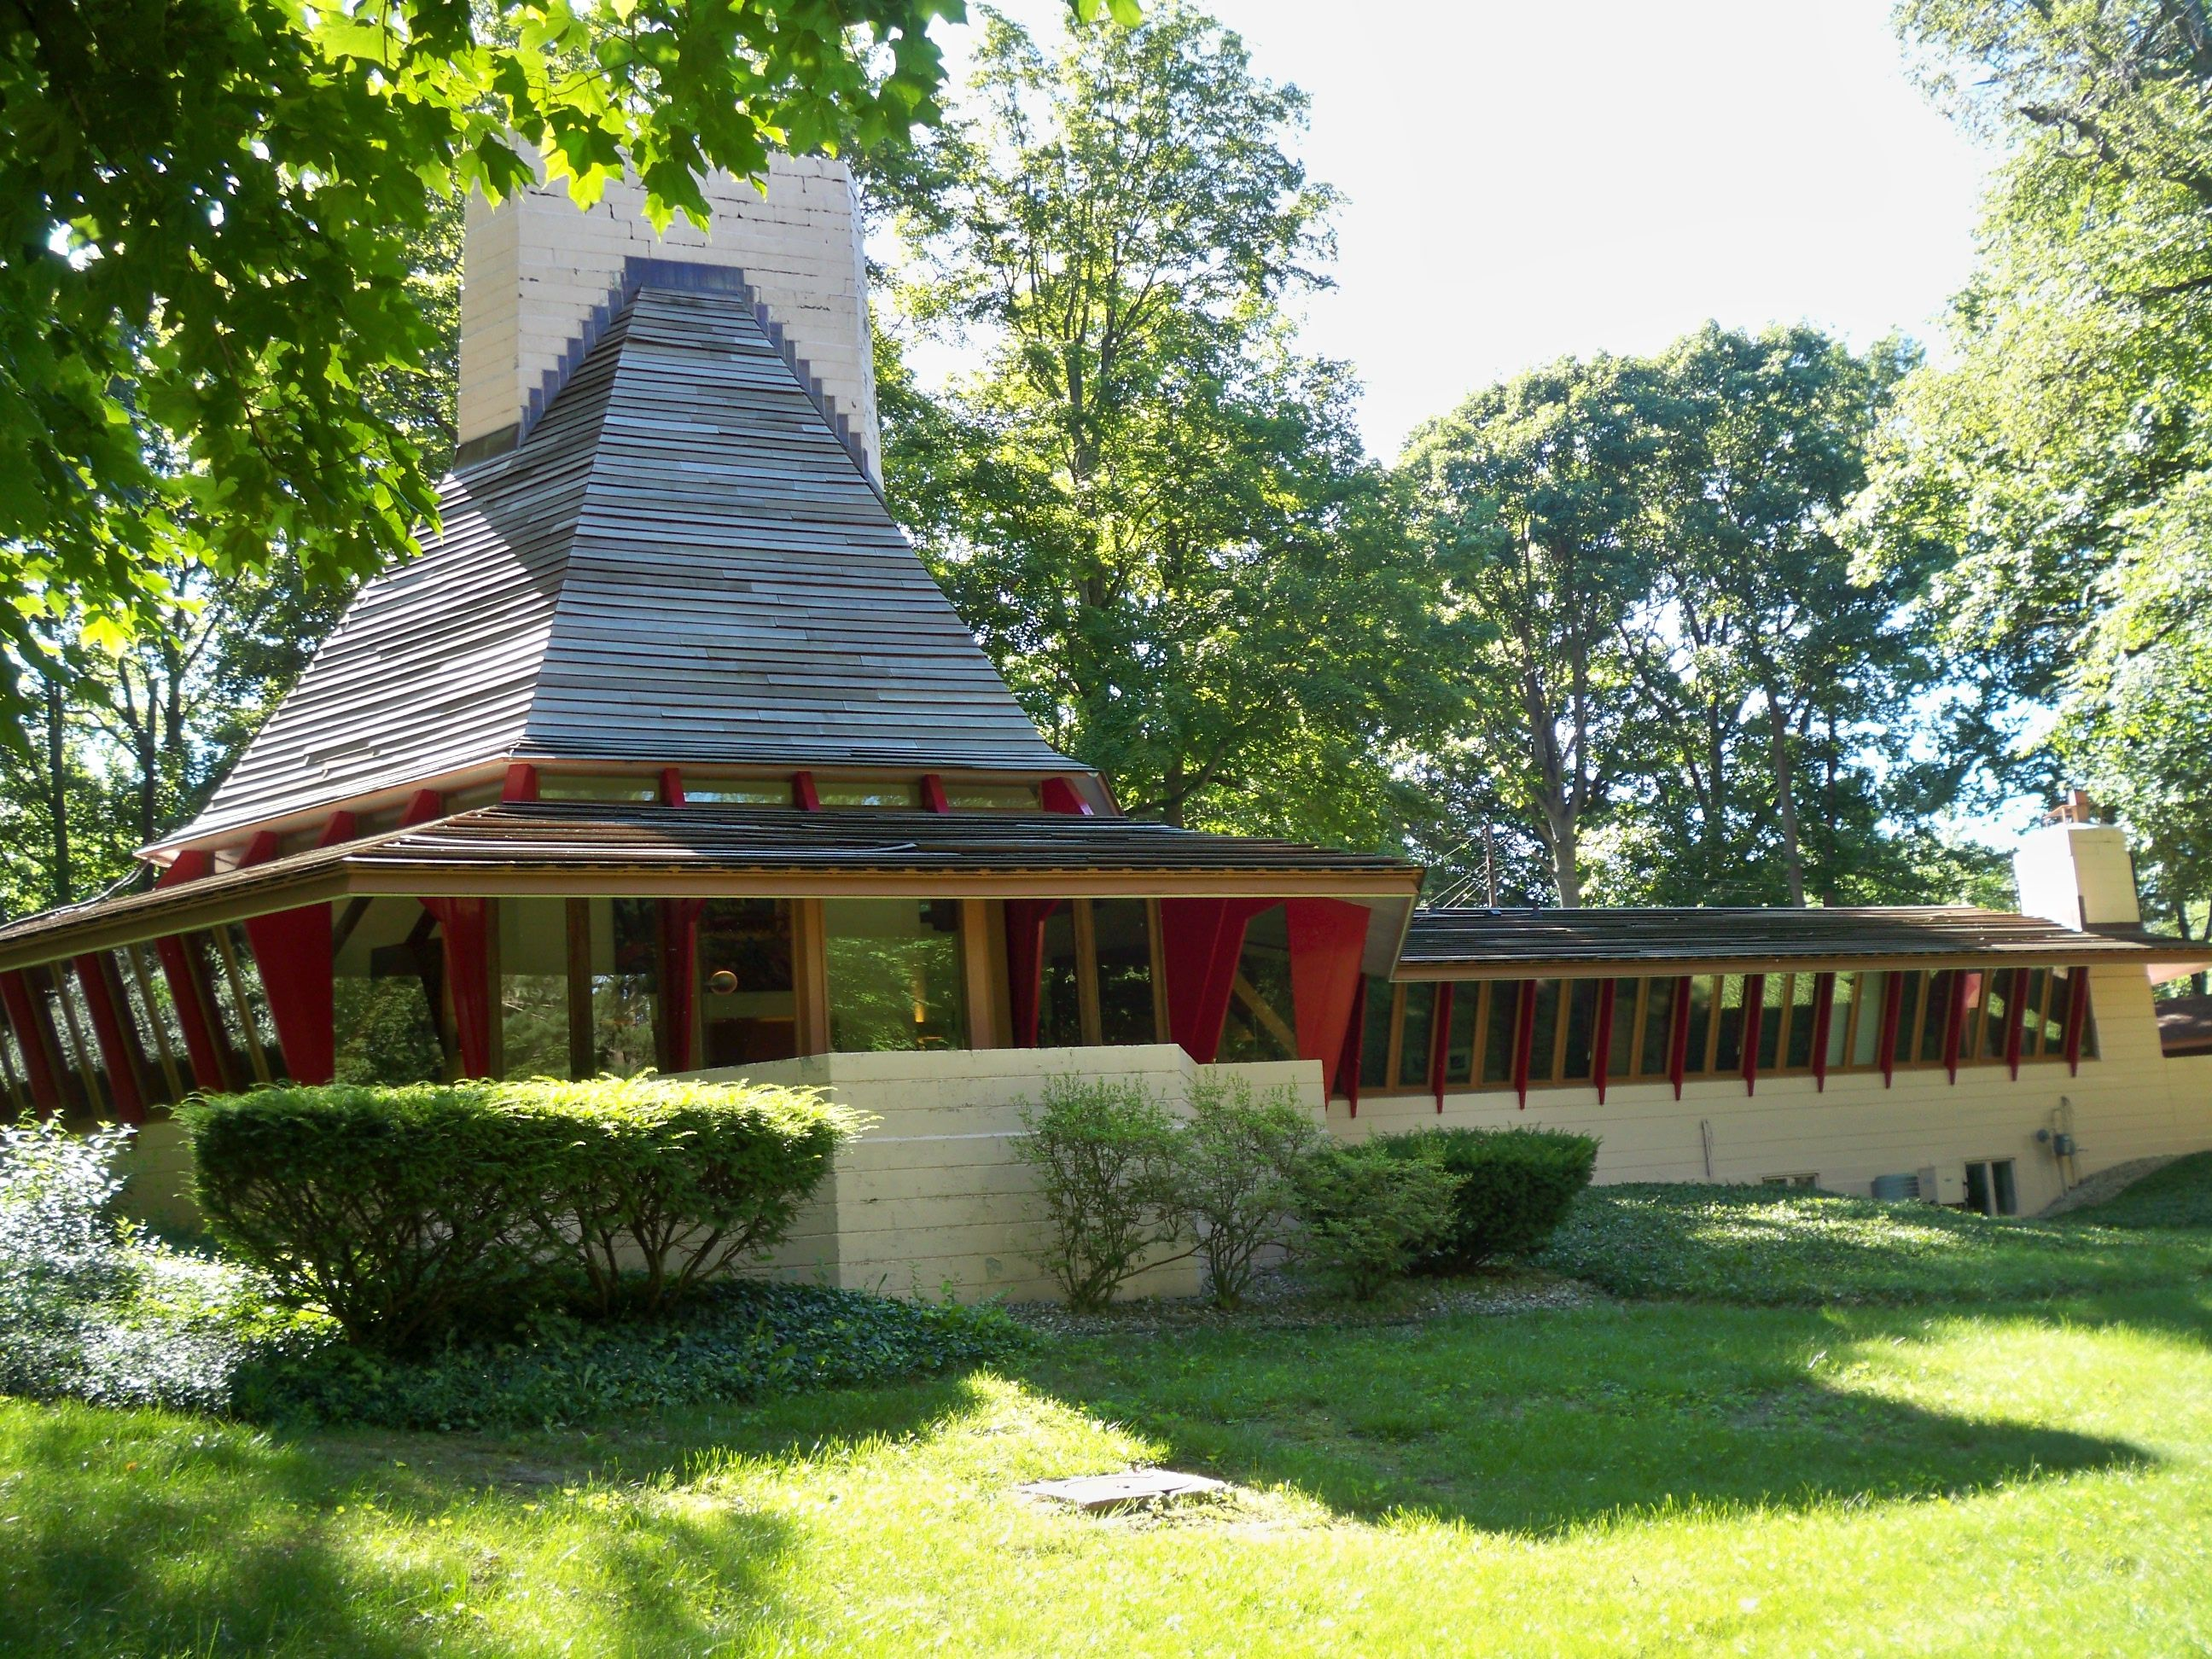 Woodside A House Built By Famed Architect Frank Lloyd Wright In